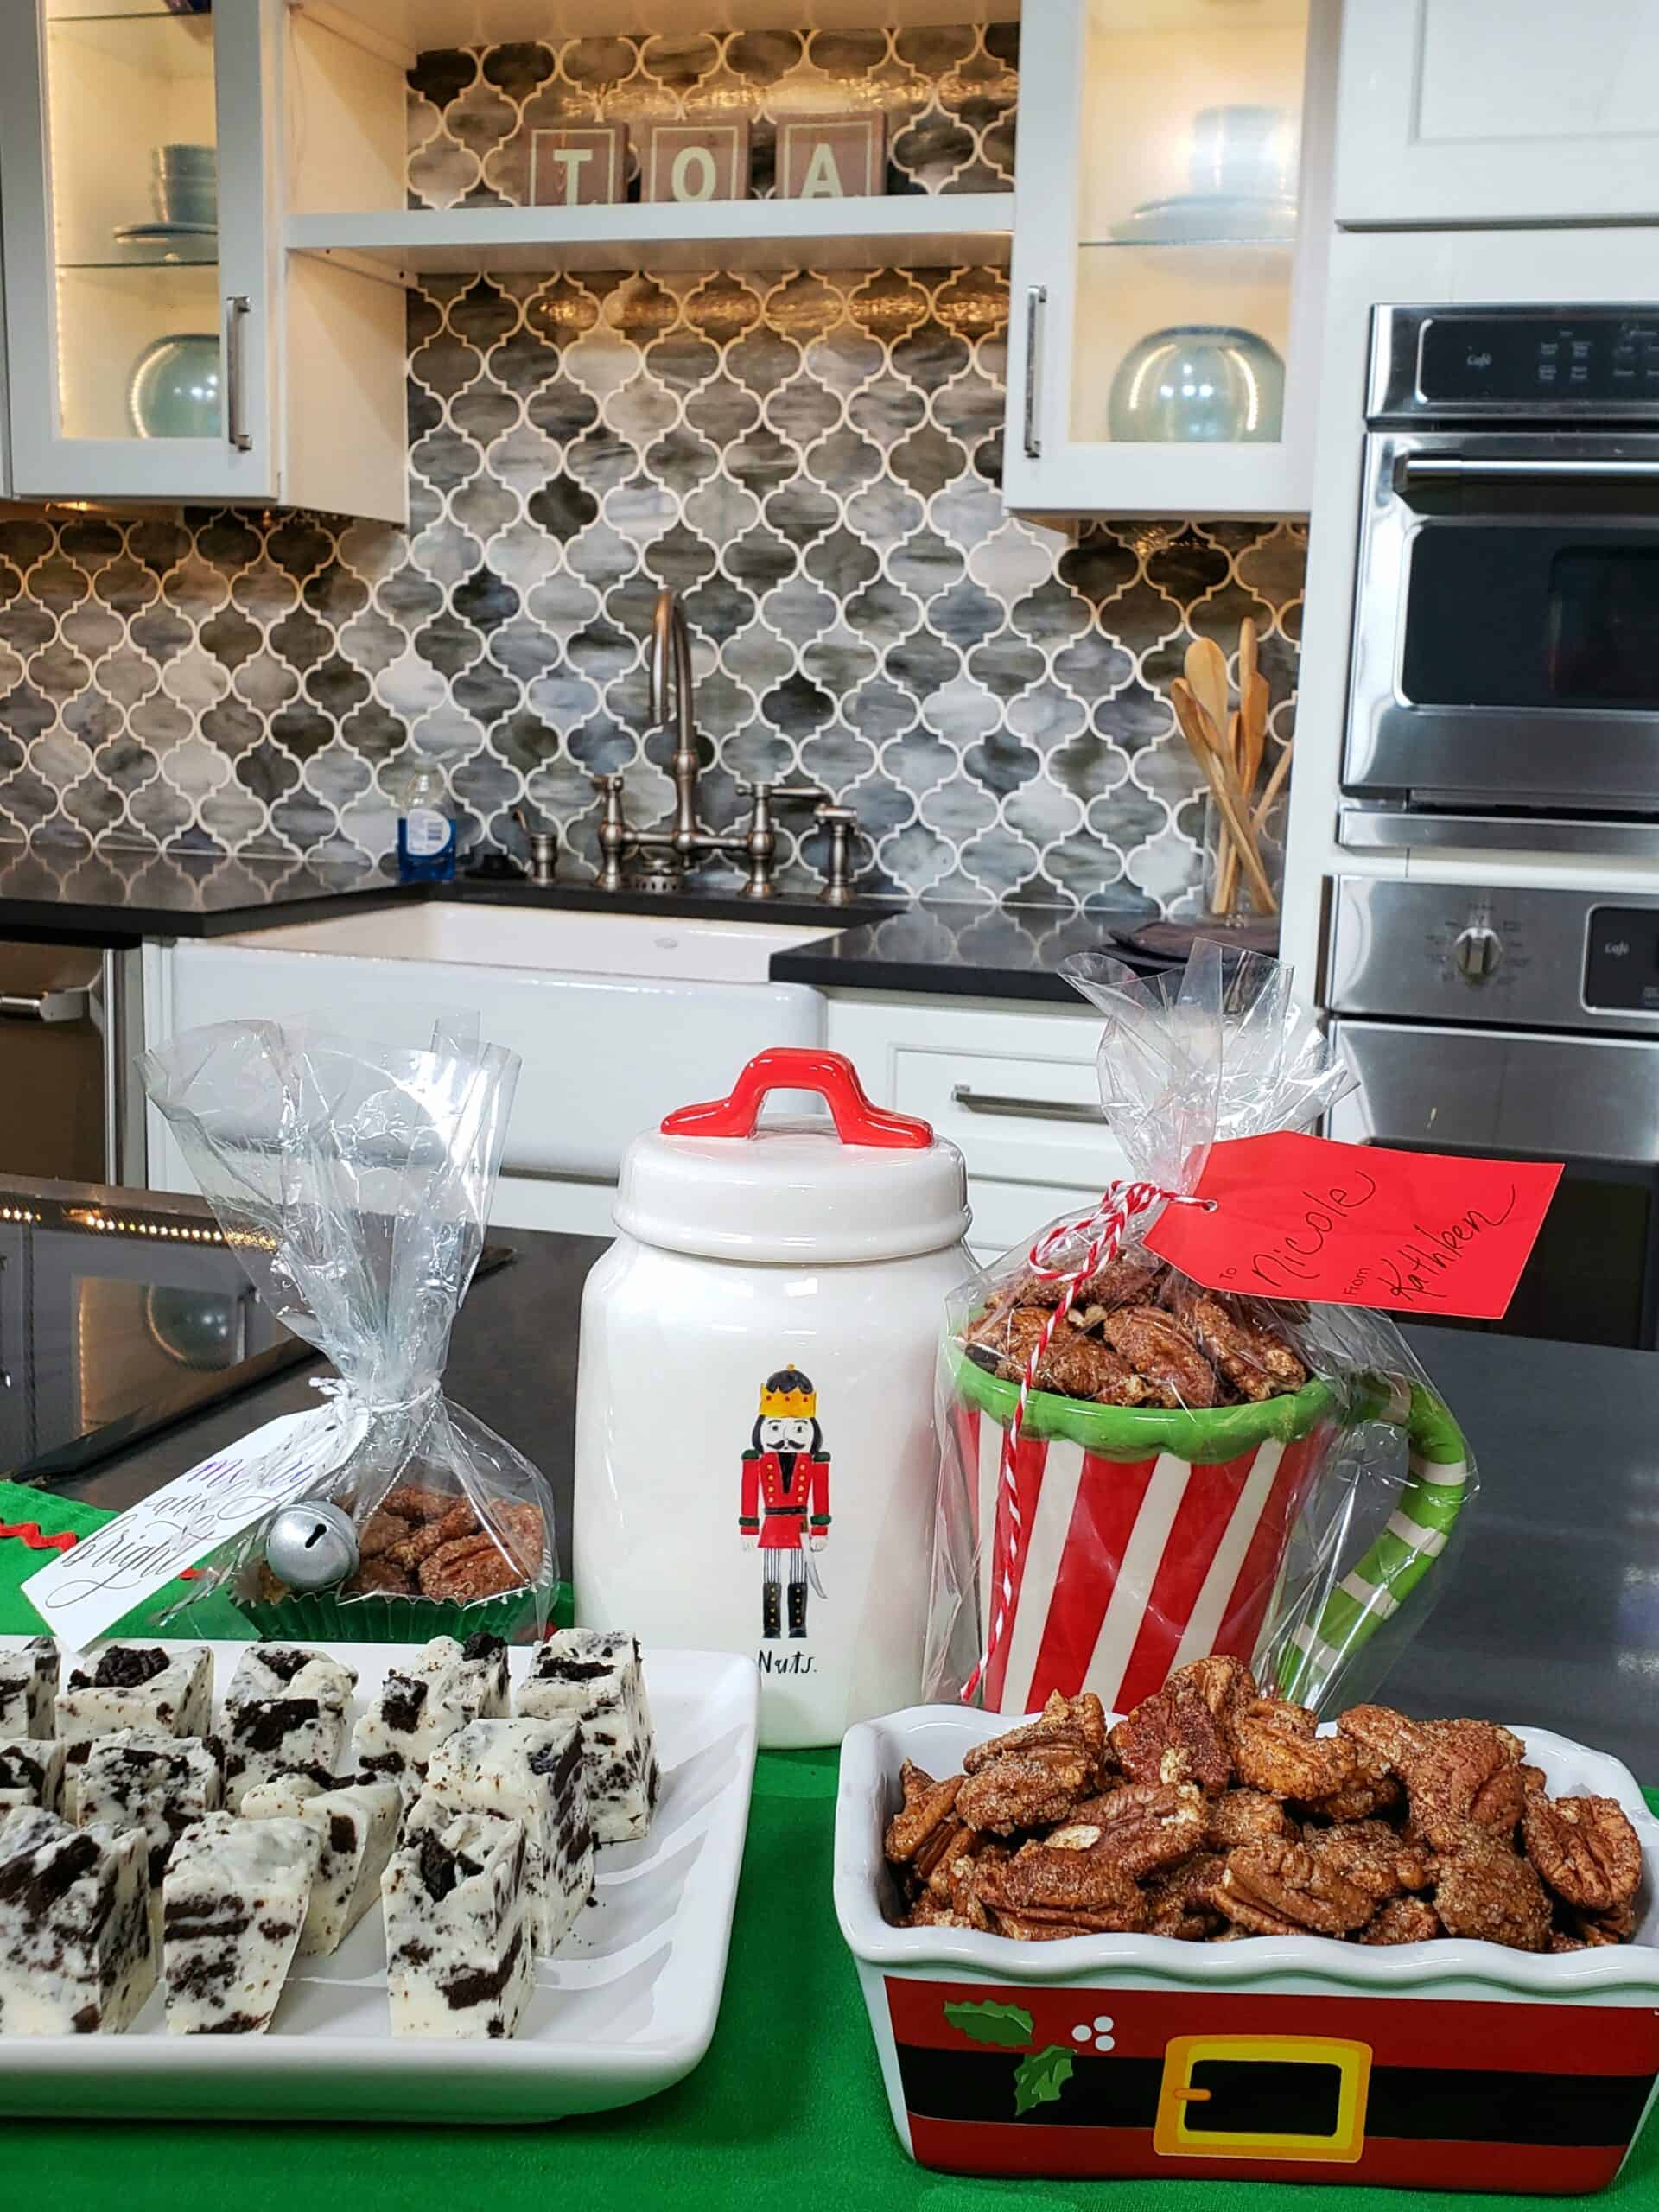 3 Ingredient Cinnamon Sugar Toasted Pecans ready and Cookies n Cream White Chocolate Fudge for Christmas gifting